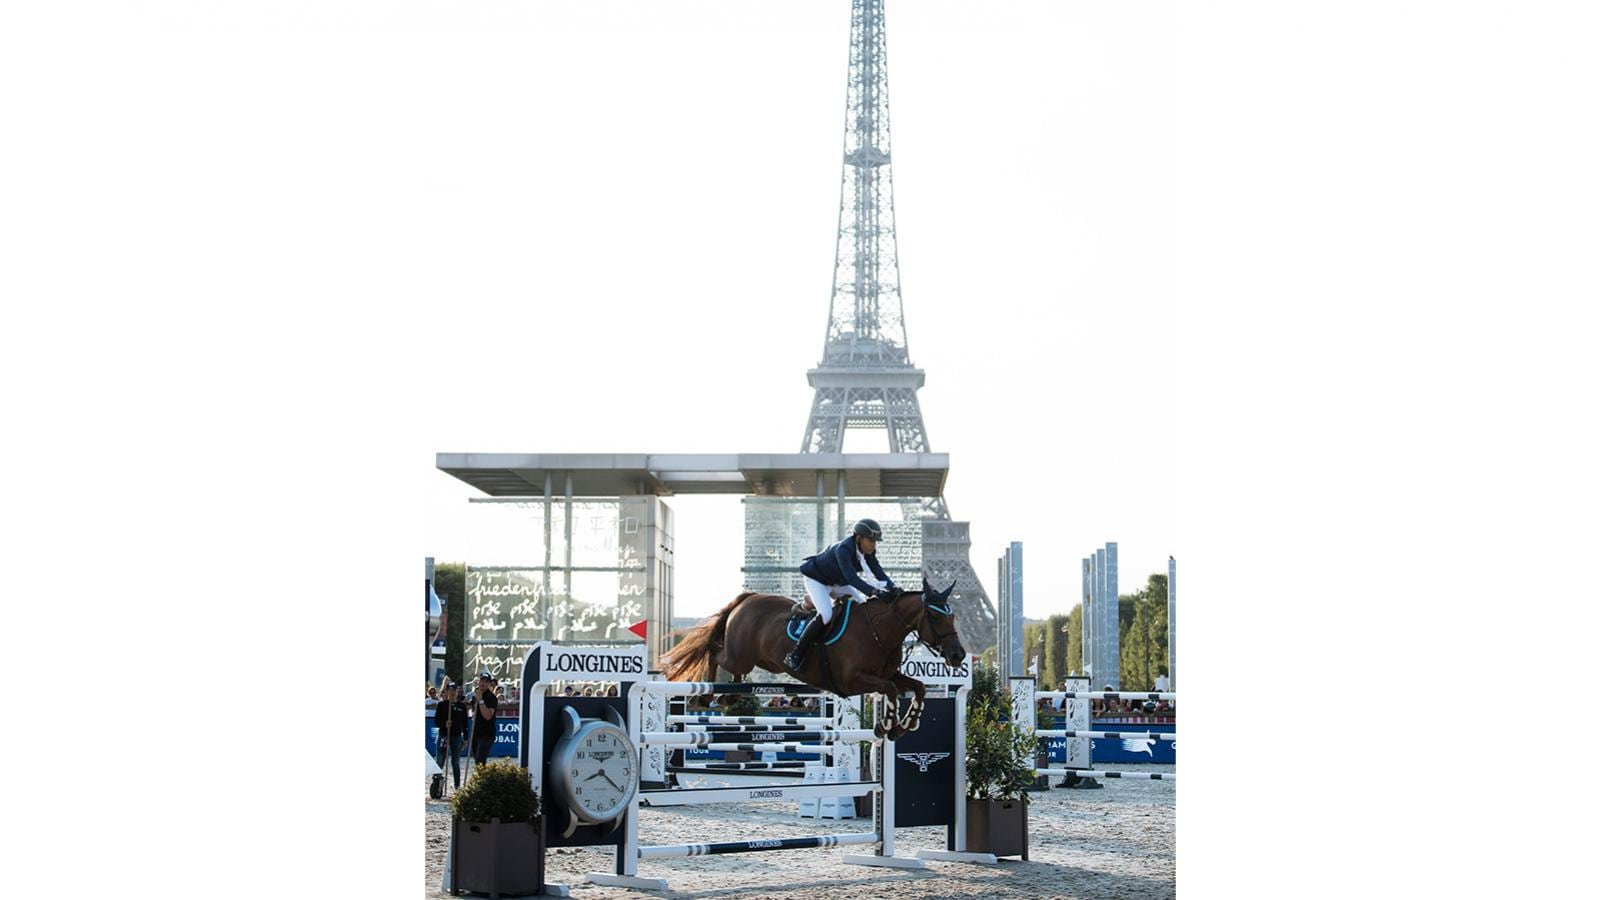 Longines Global Champions Tour; Paris;2018,pic2